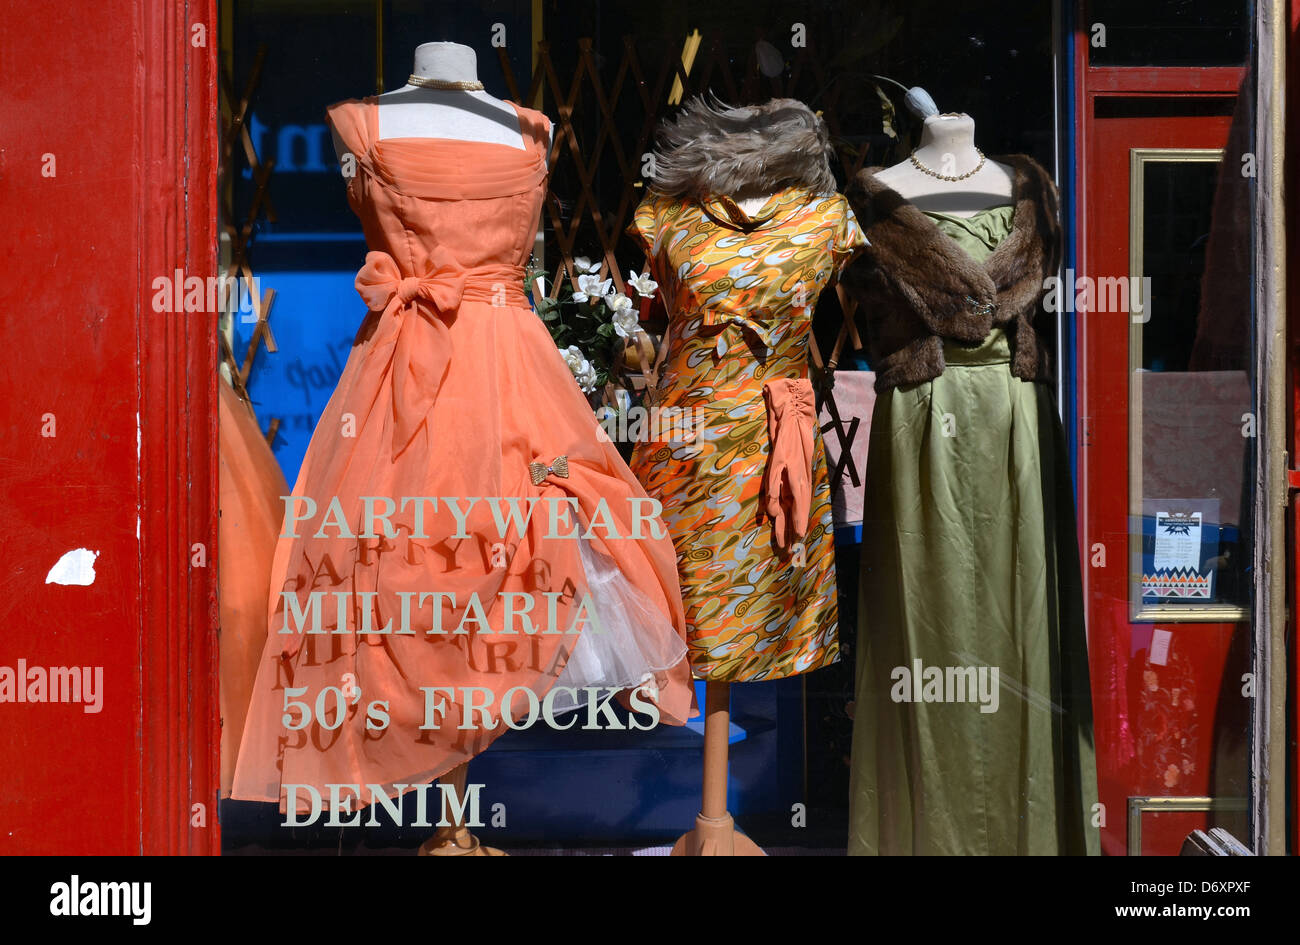 The Vintage Clothing Store